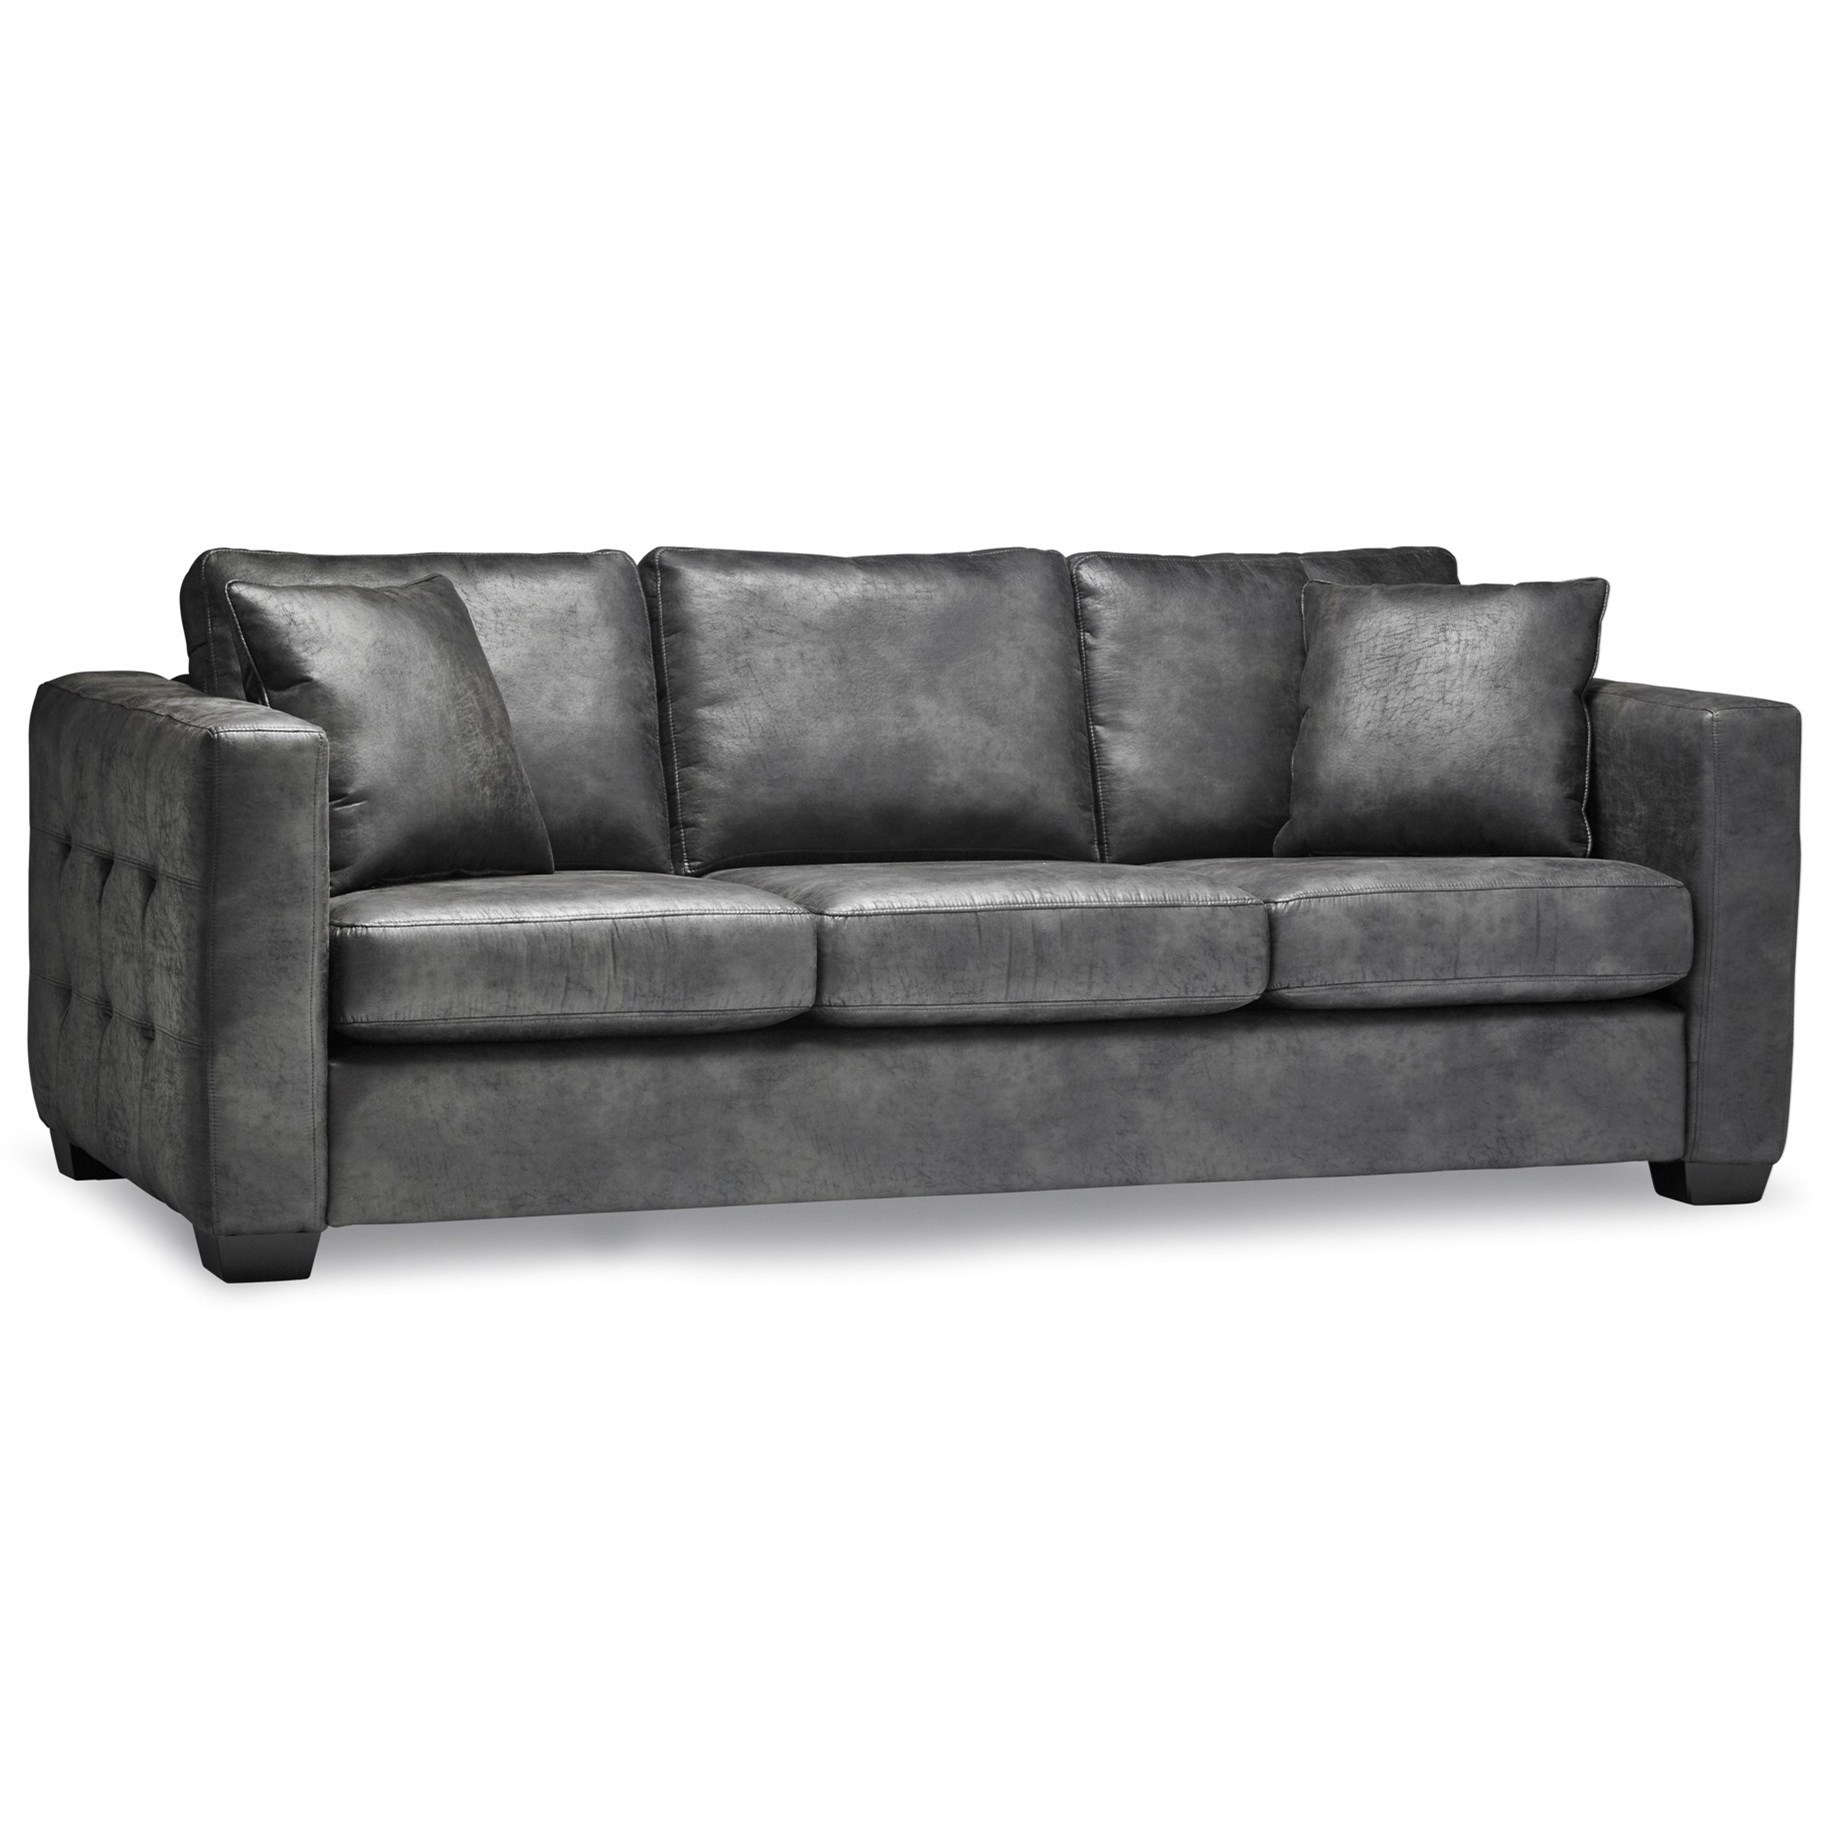 Spacious Sofas And Sectionals At Stoney Creek Furniture   Toronto With Vaughan Sectional Sofas (View 5 of 10)